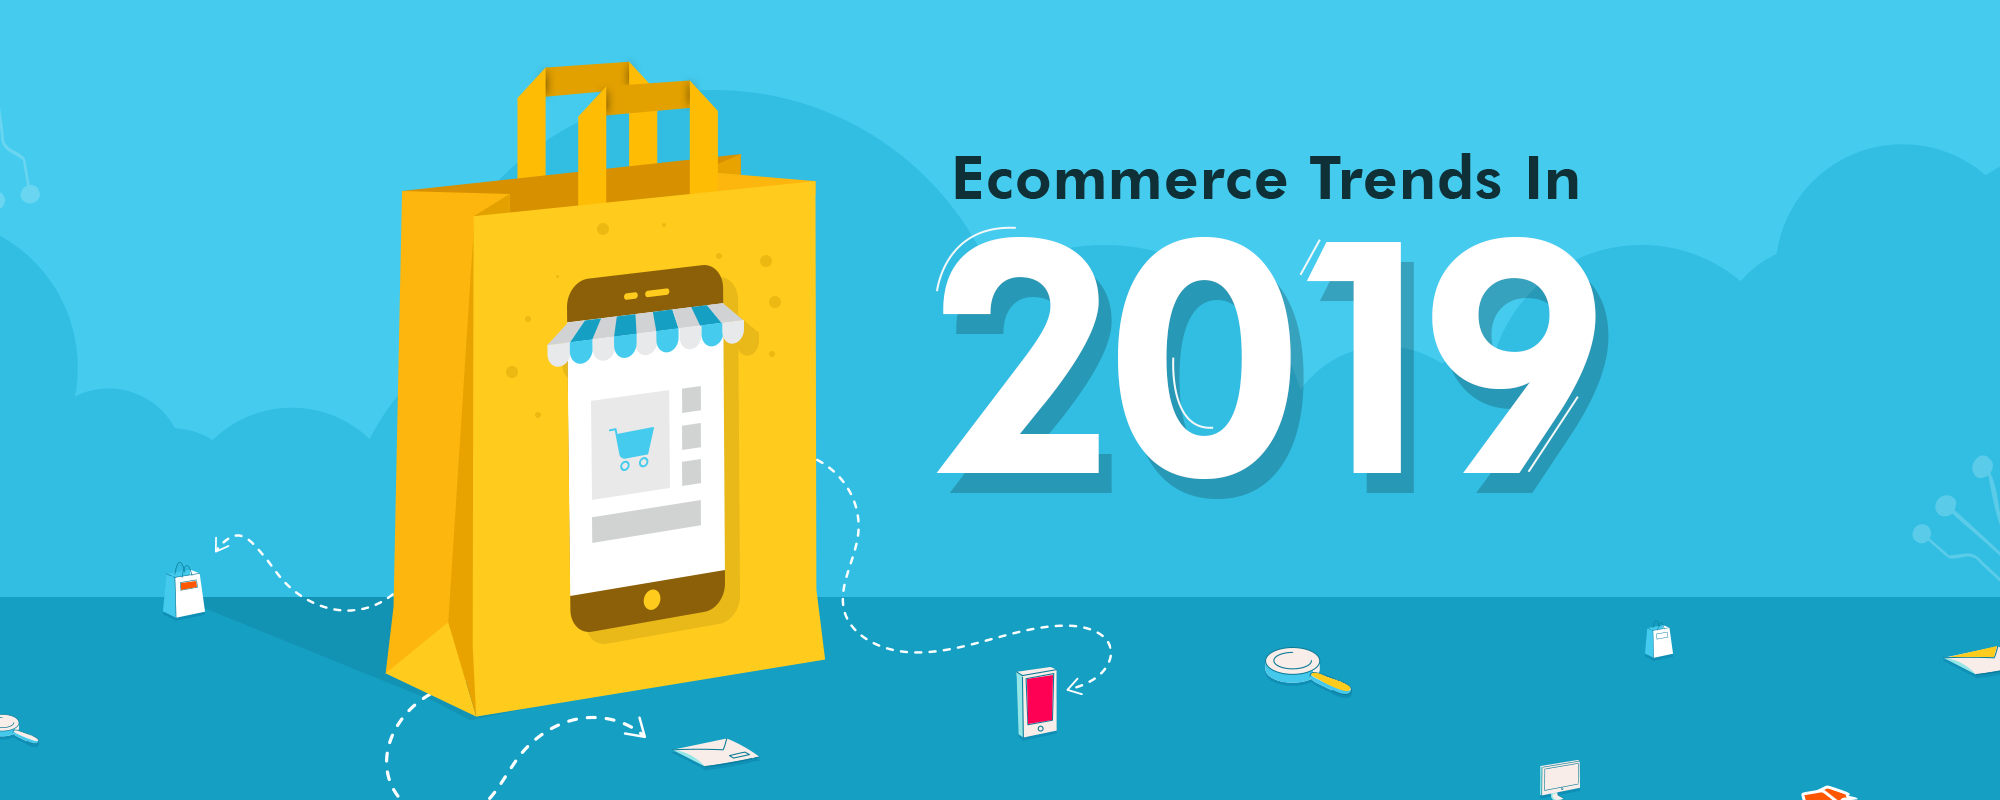 Ecommerce Trends That Will Prevail In 2019